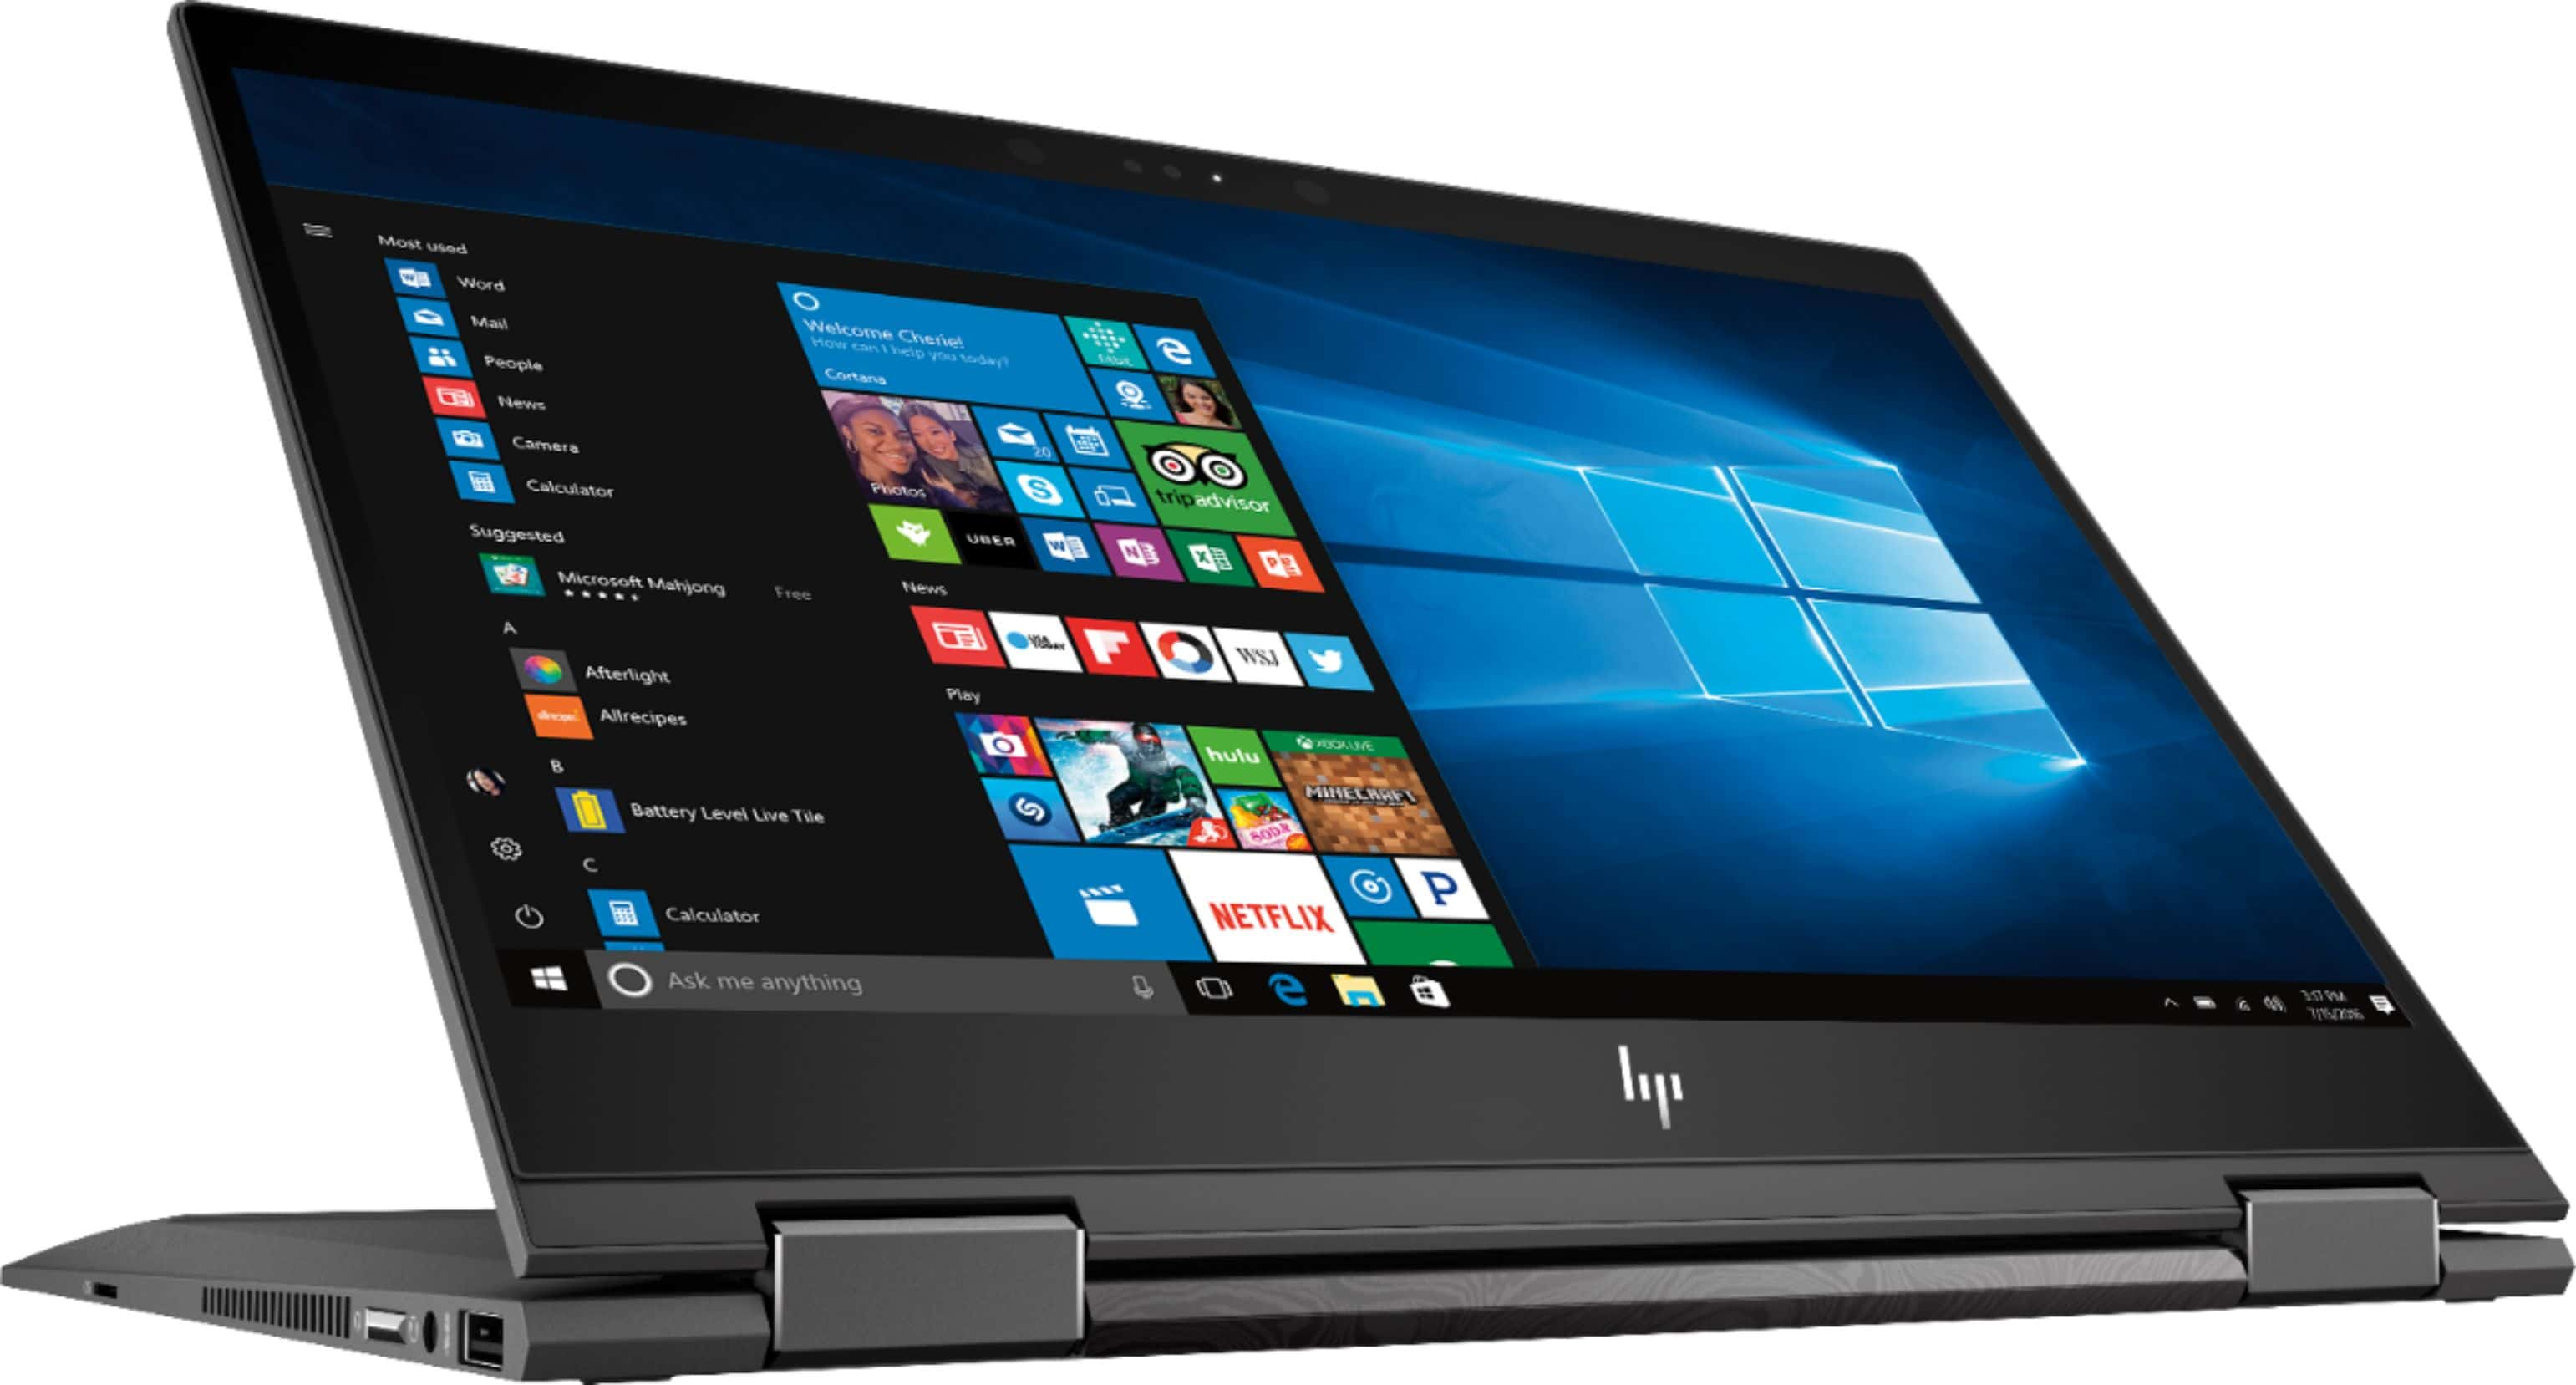 The Laptop You Desire in the HP Envy